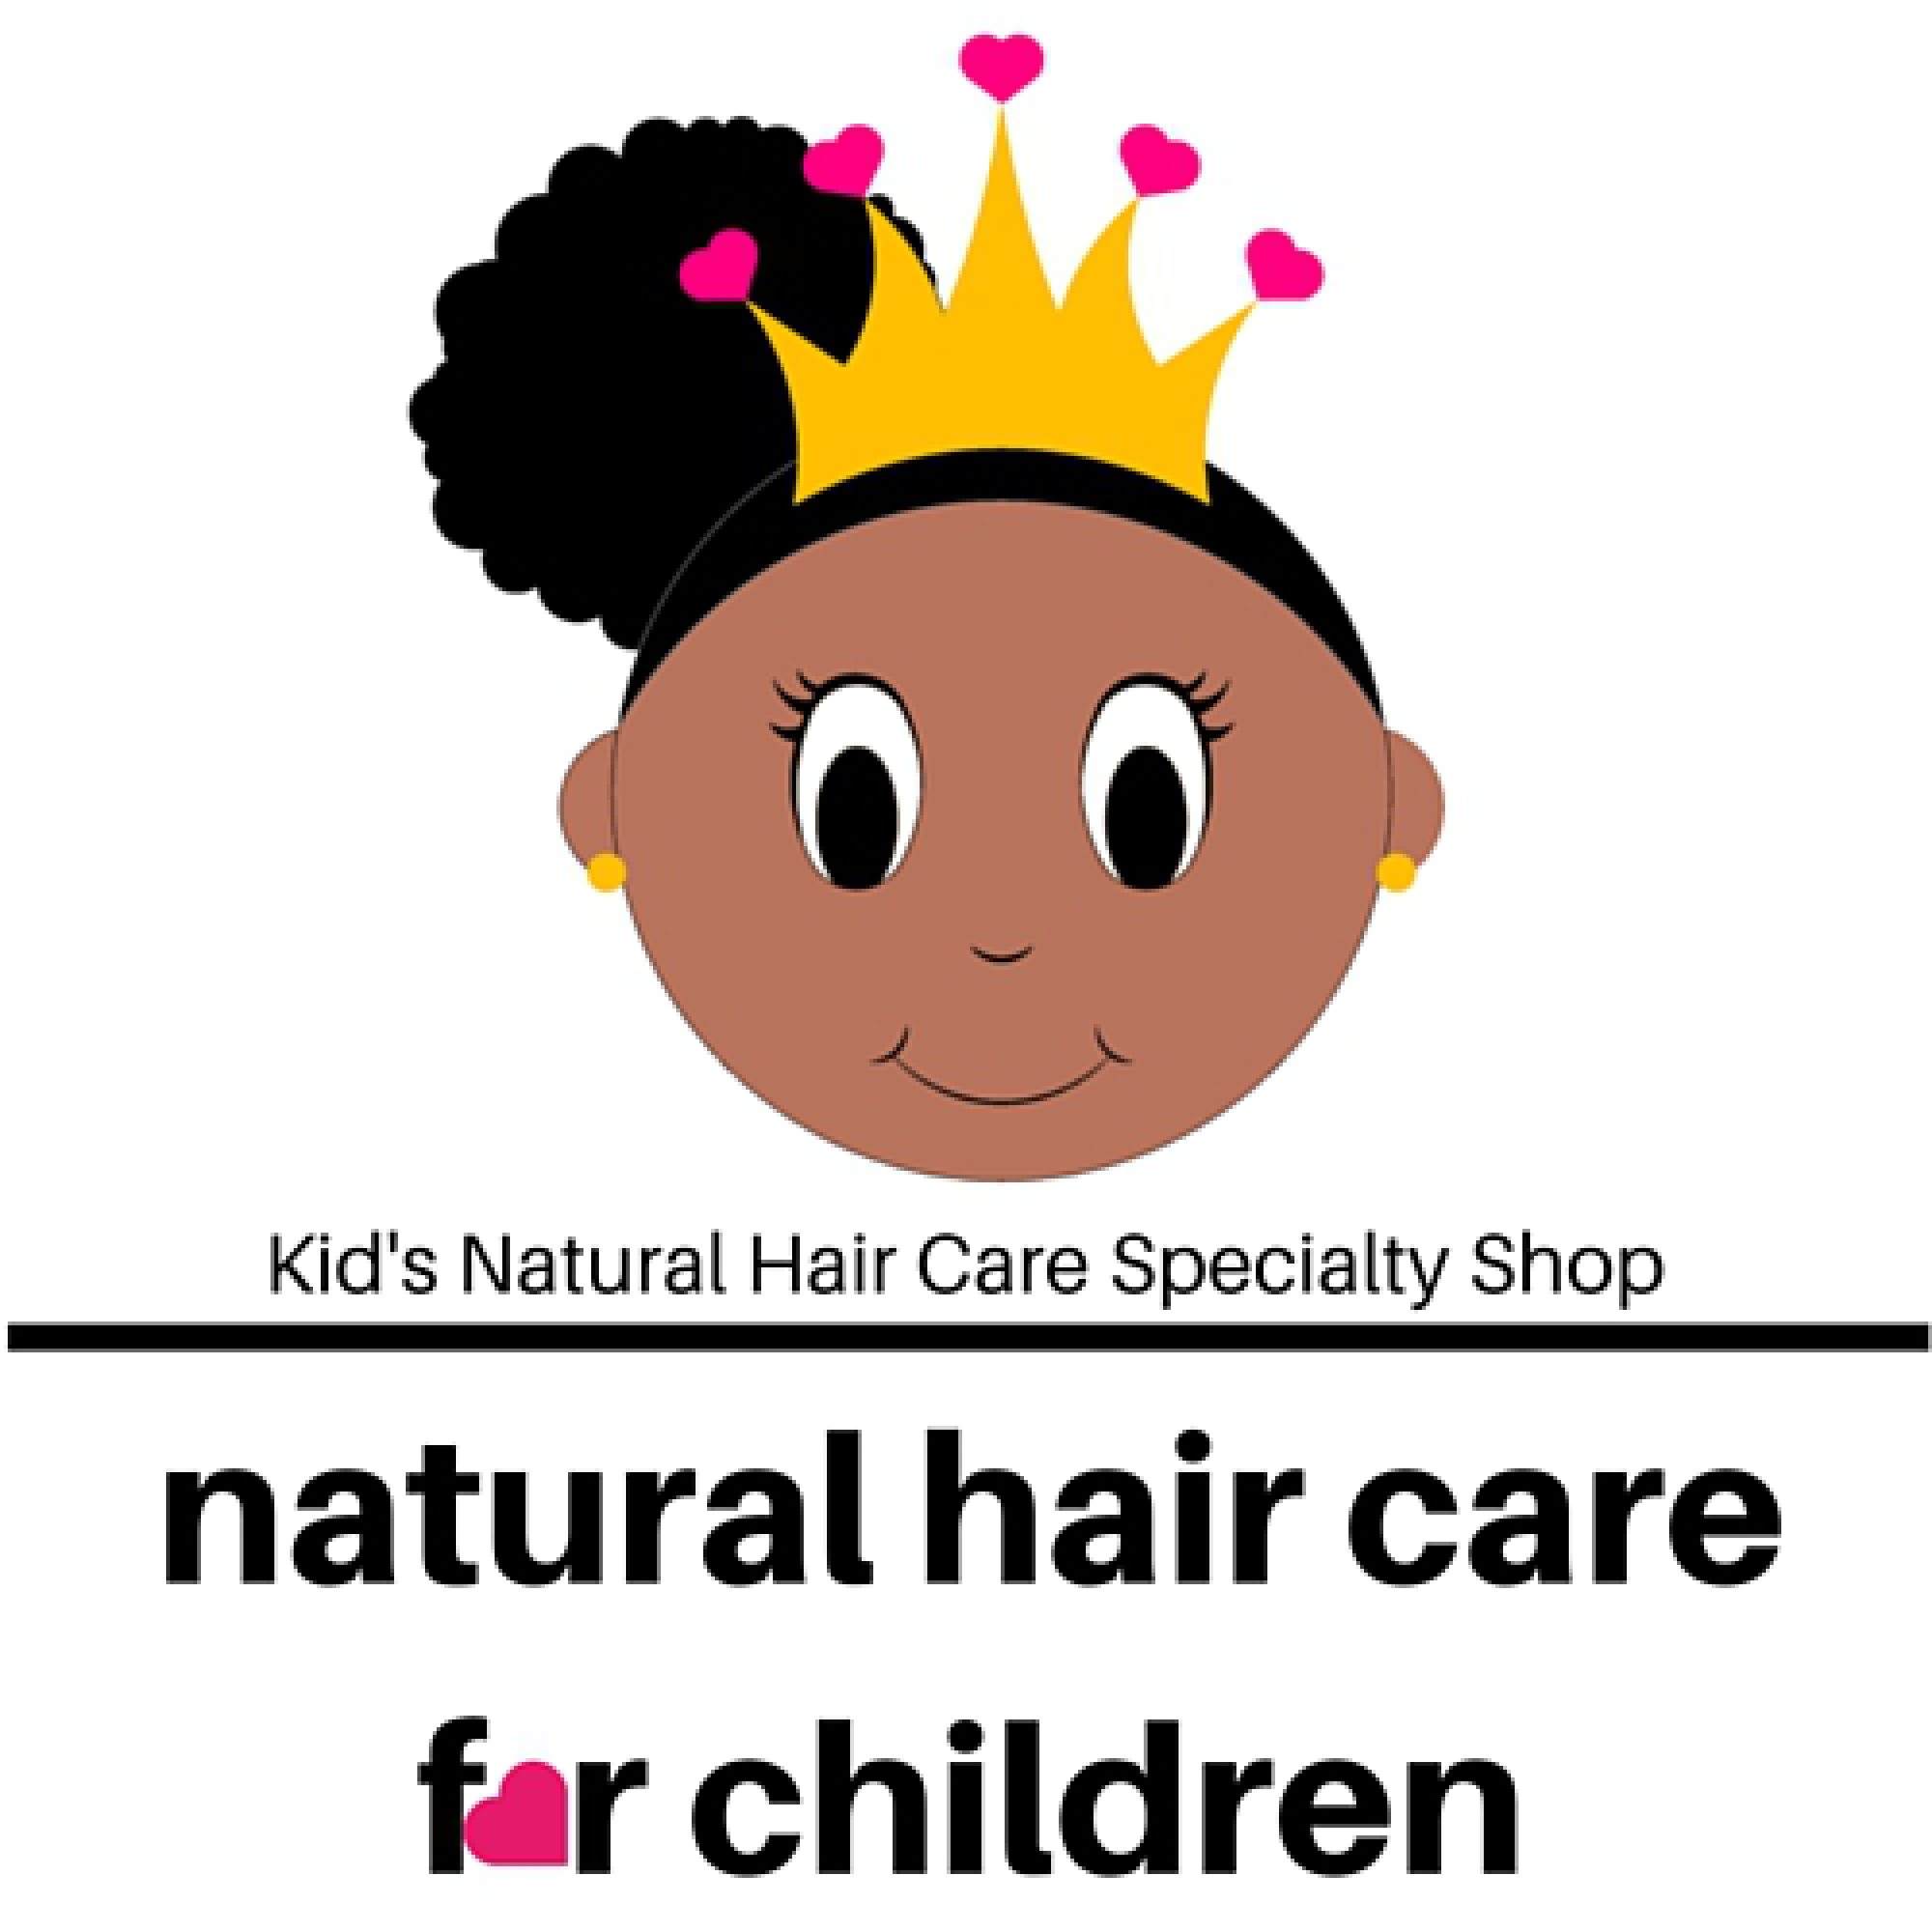 Natural Hair Care for Children